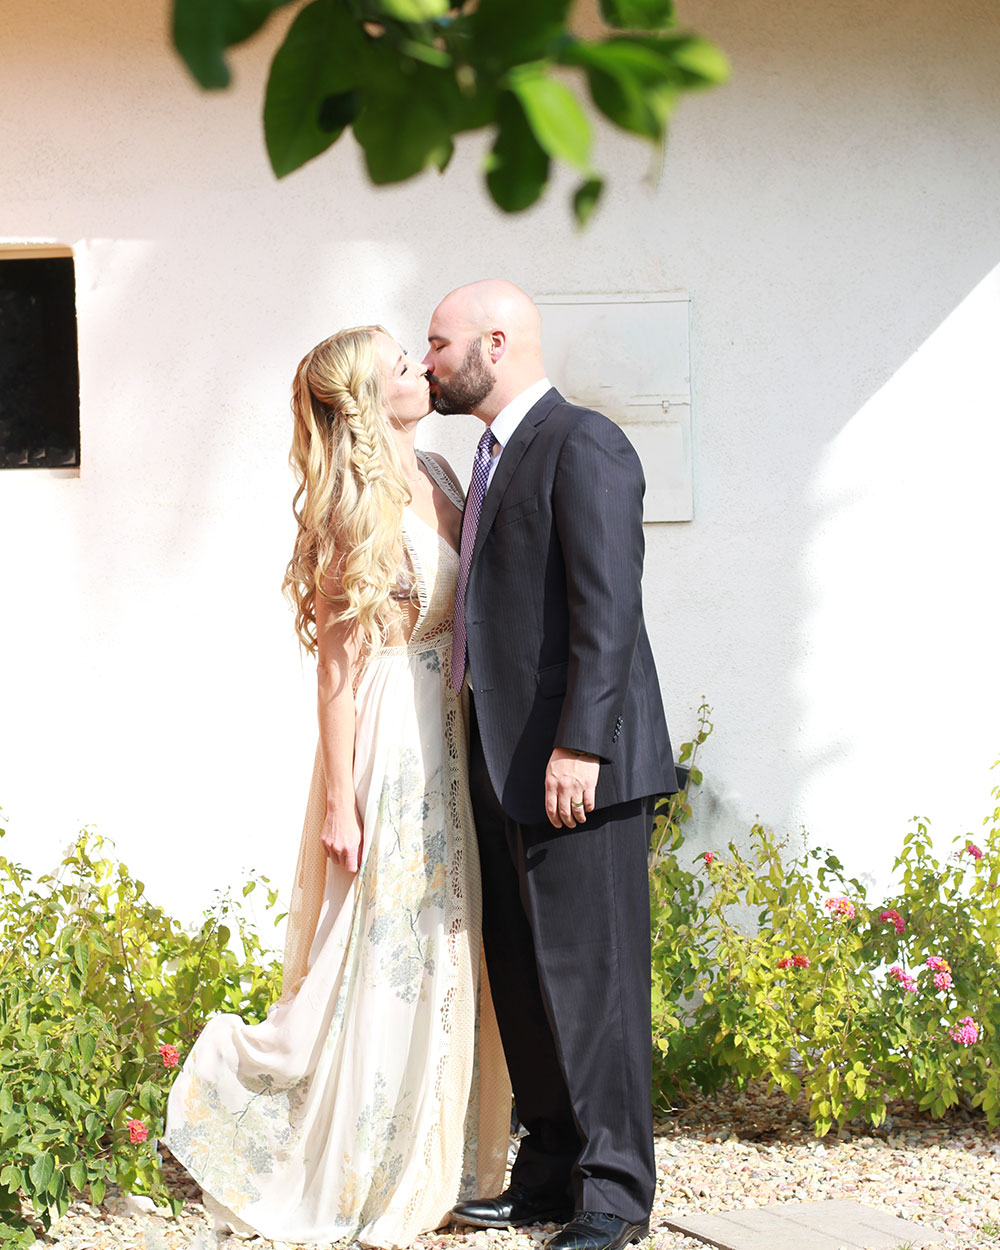 my love and I, ready for our friends' wedding in palm springs | thelovedesignedlife.com